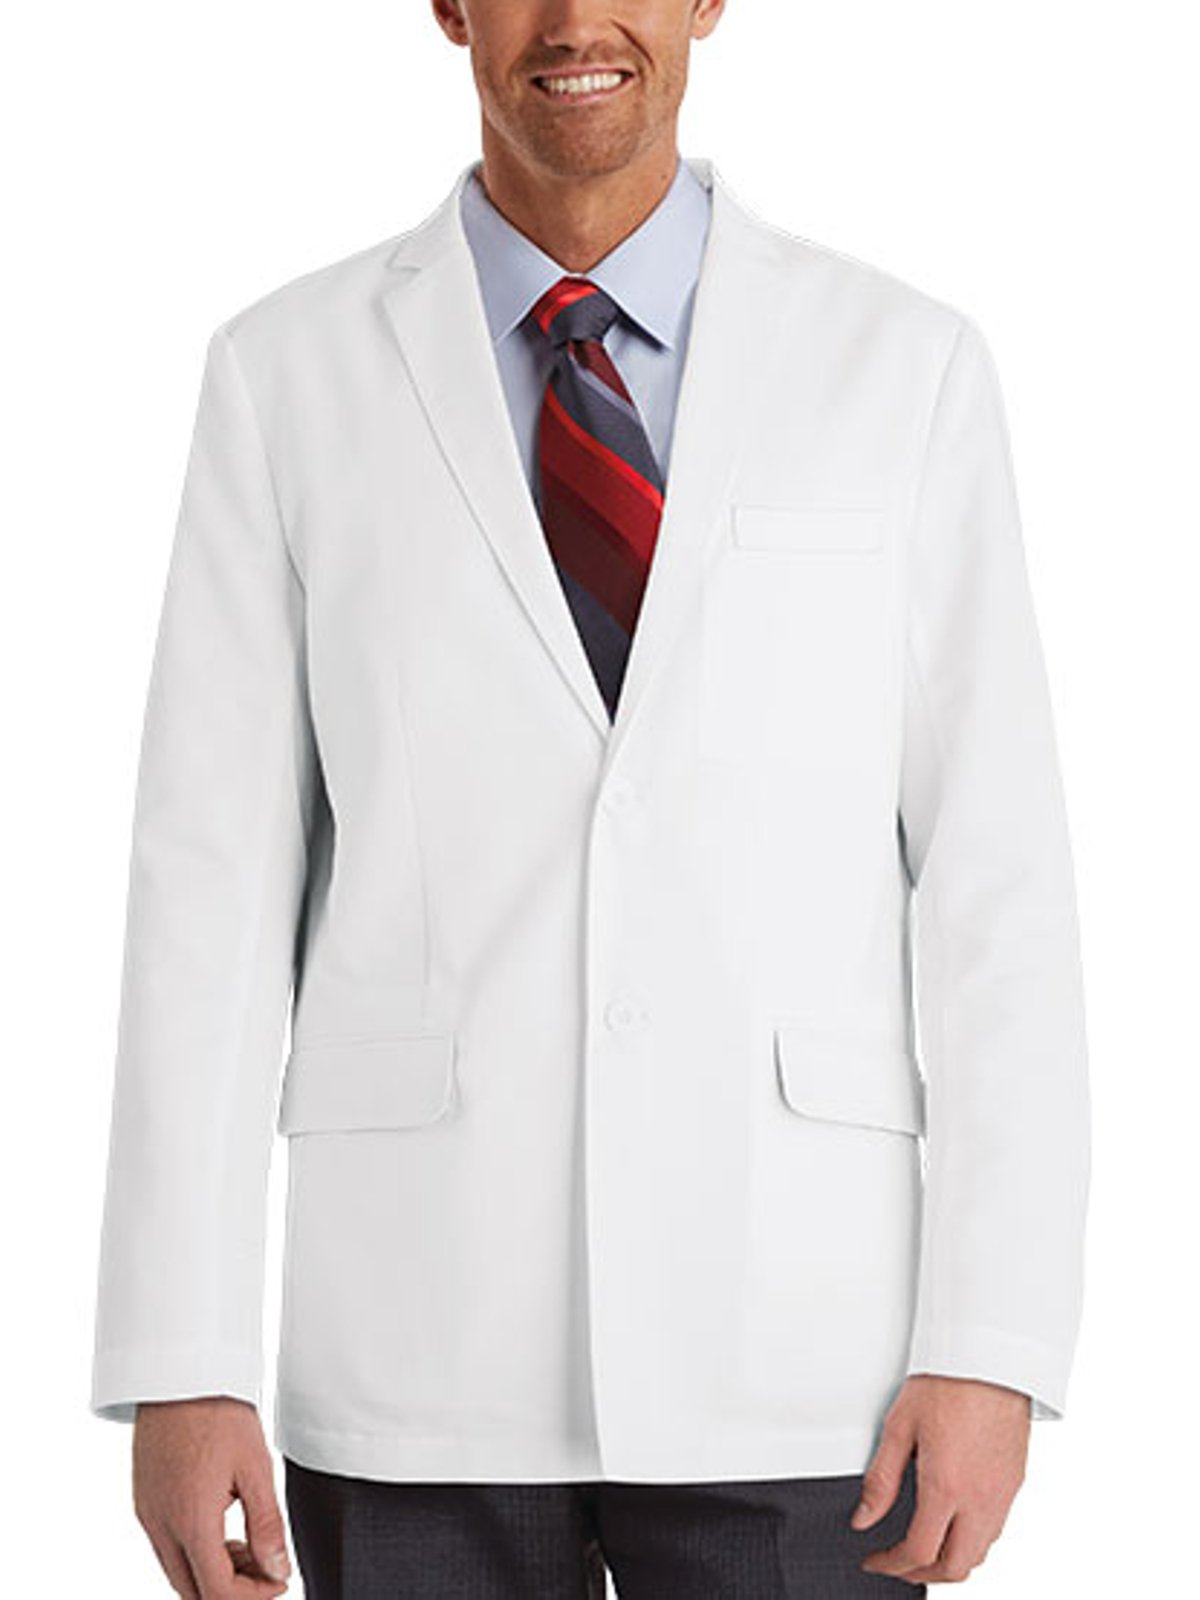 Grey's Anatomy 0916 Men's Lab Consultation Coat White 38